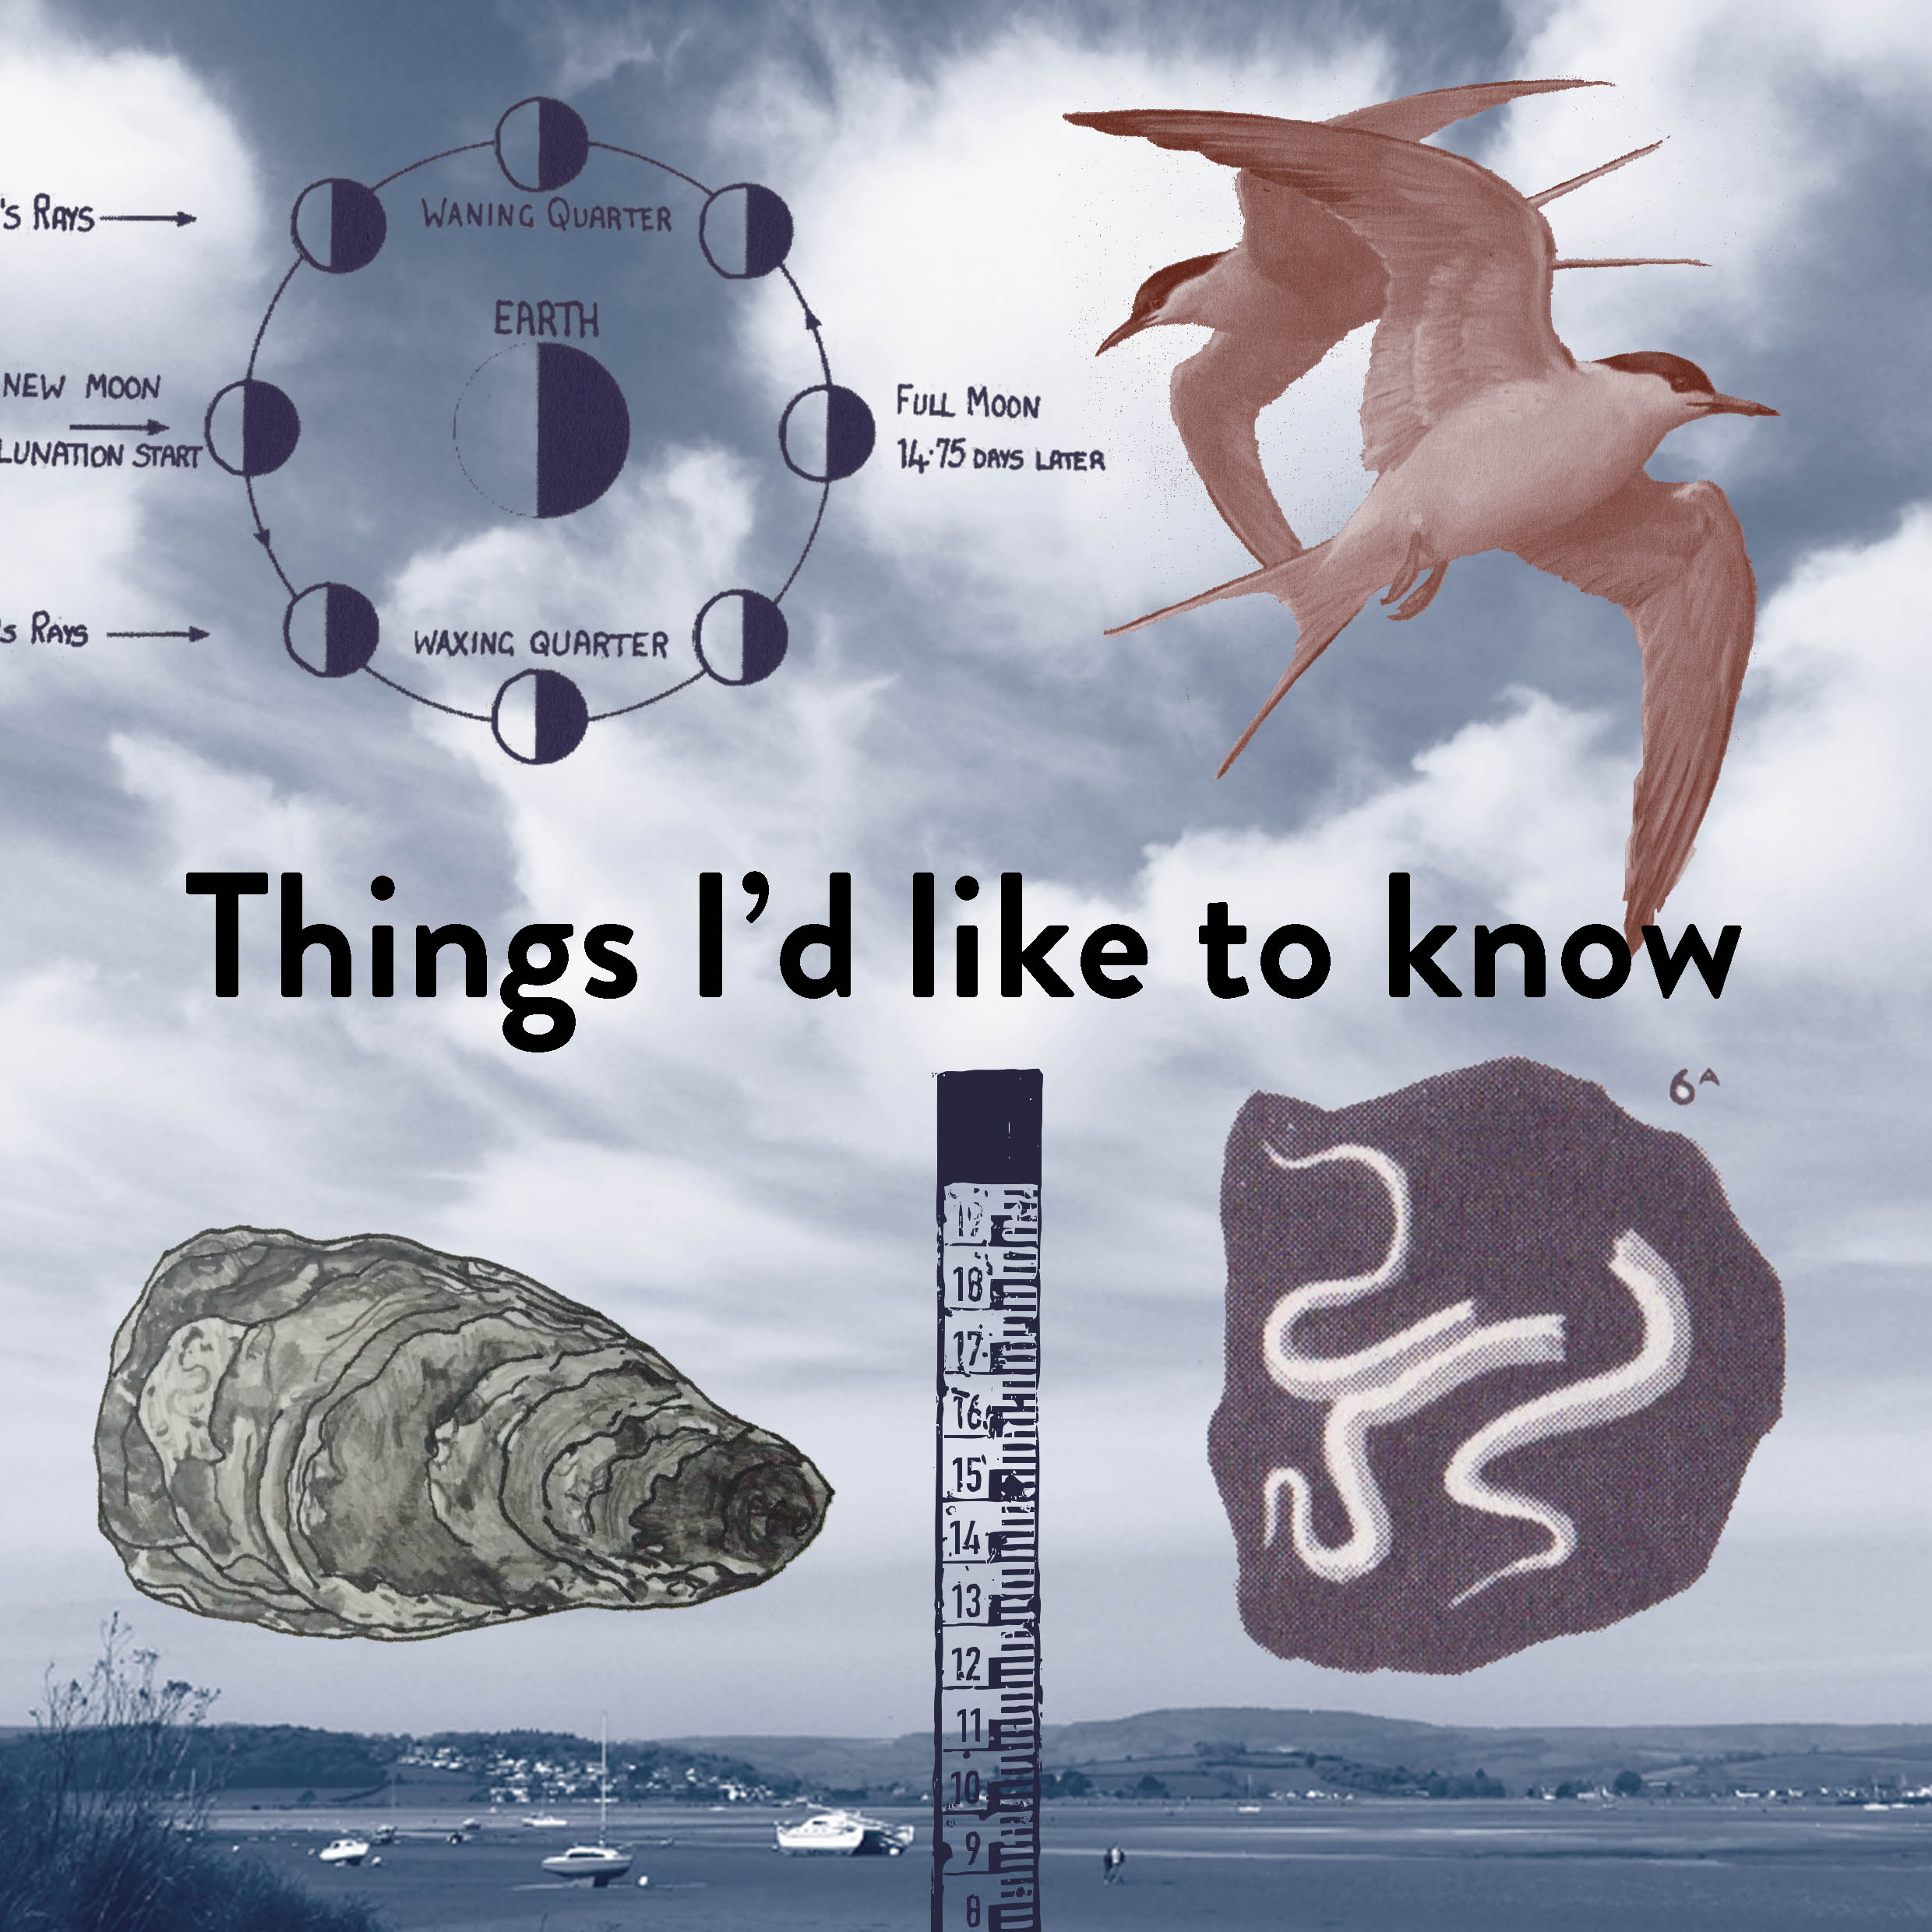 Things I'd like to know